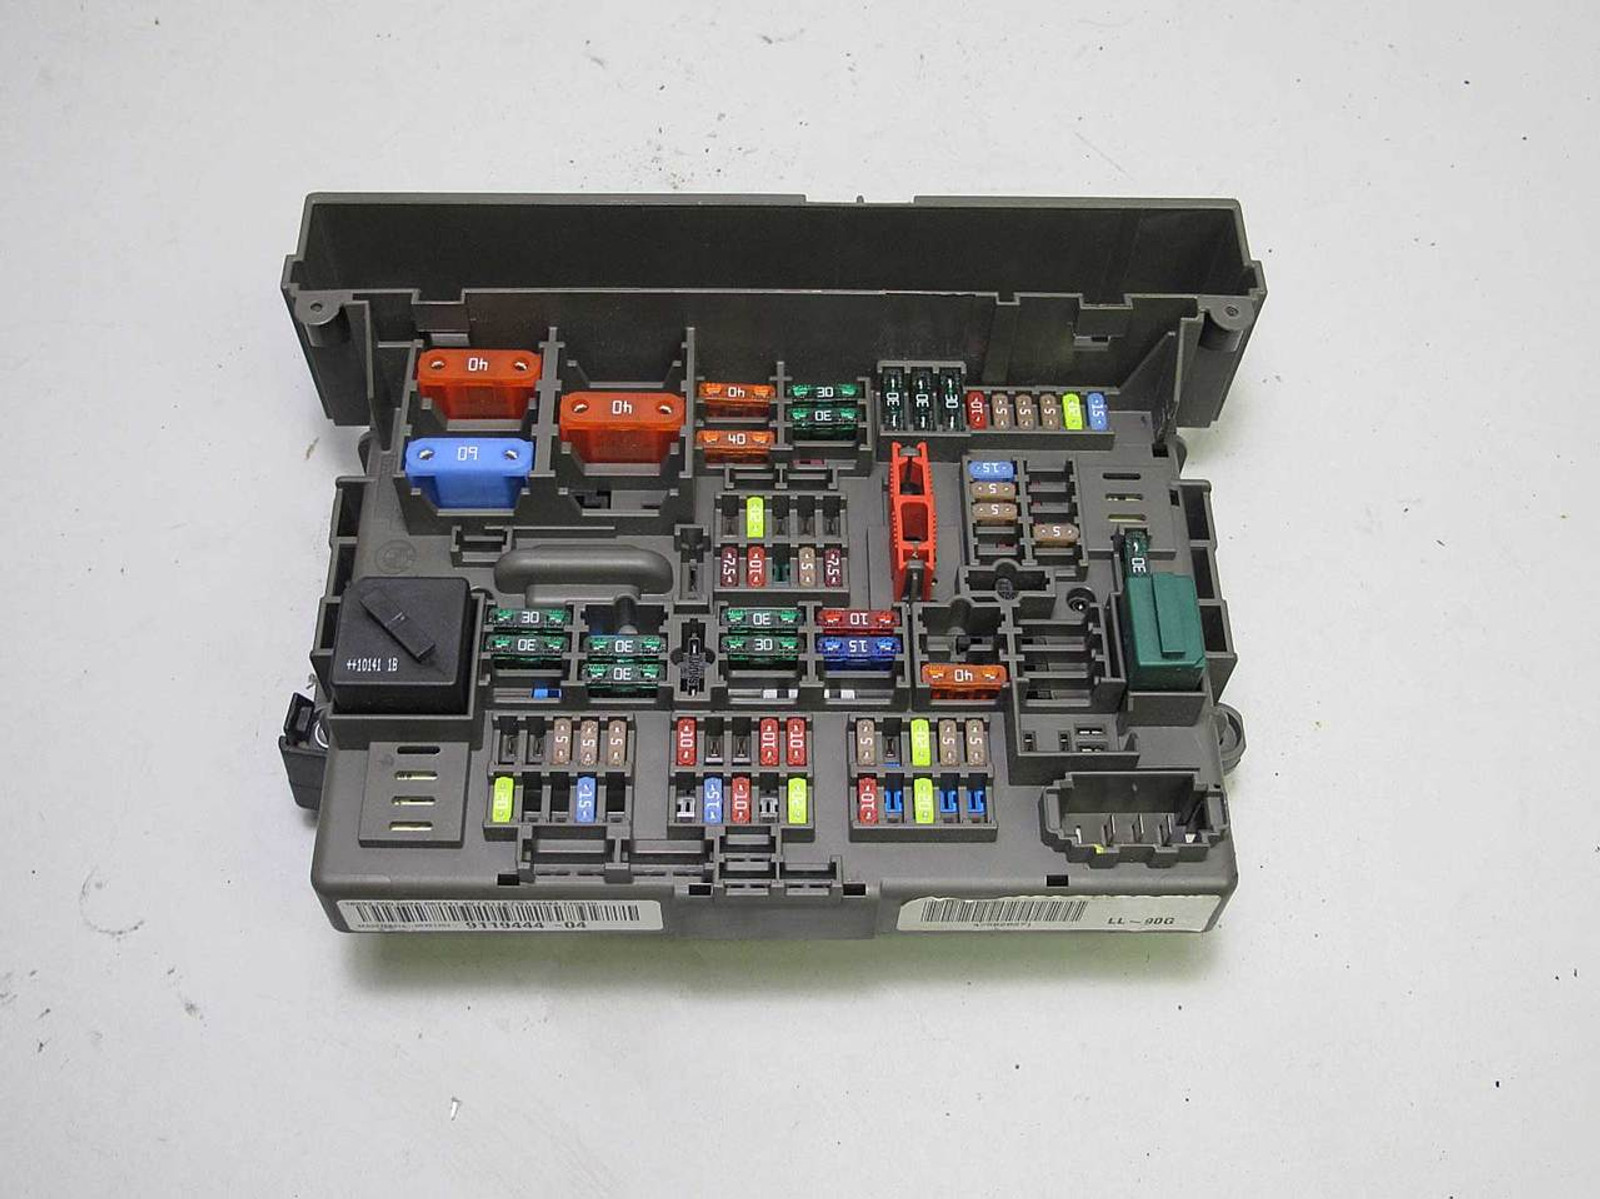 2000 740il Fuse Box Manual Of Wiring Diagram Bmw Z3 Trusted Rh Dafpods Co